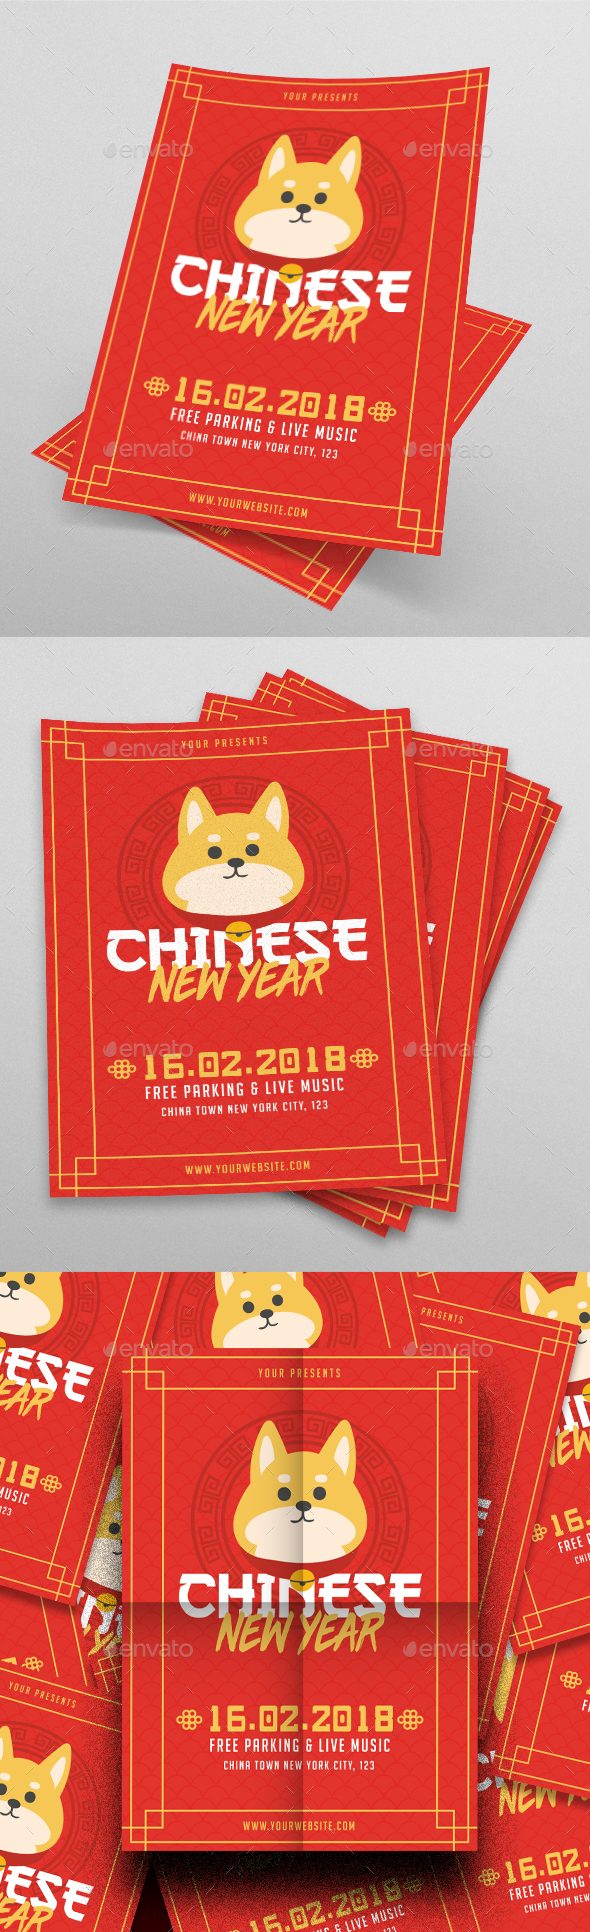 Chinese New Year 2018 - Flyers Print Templates